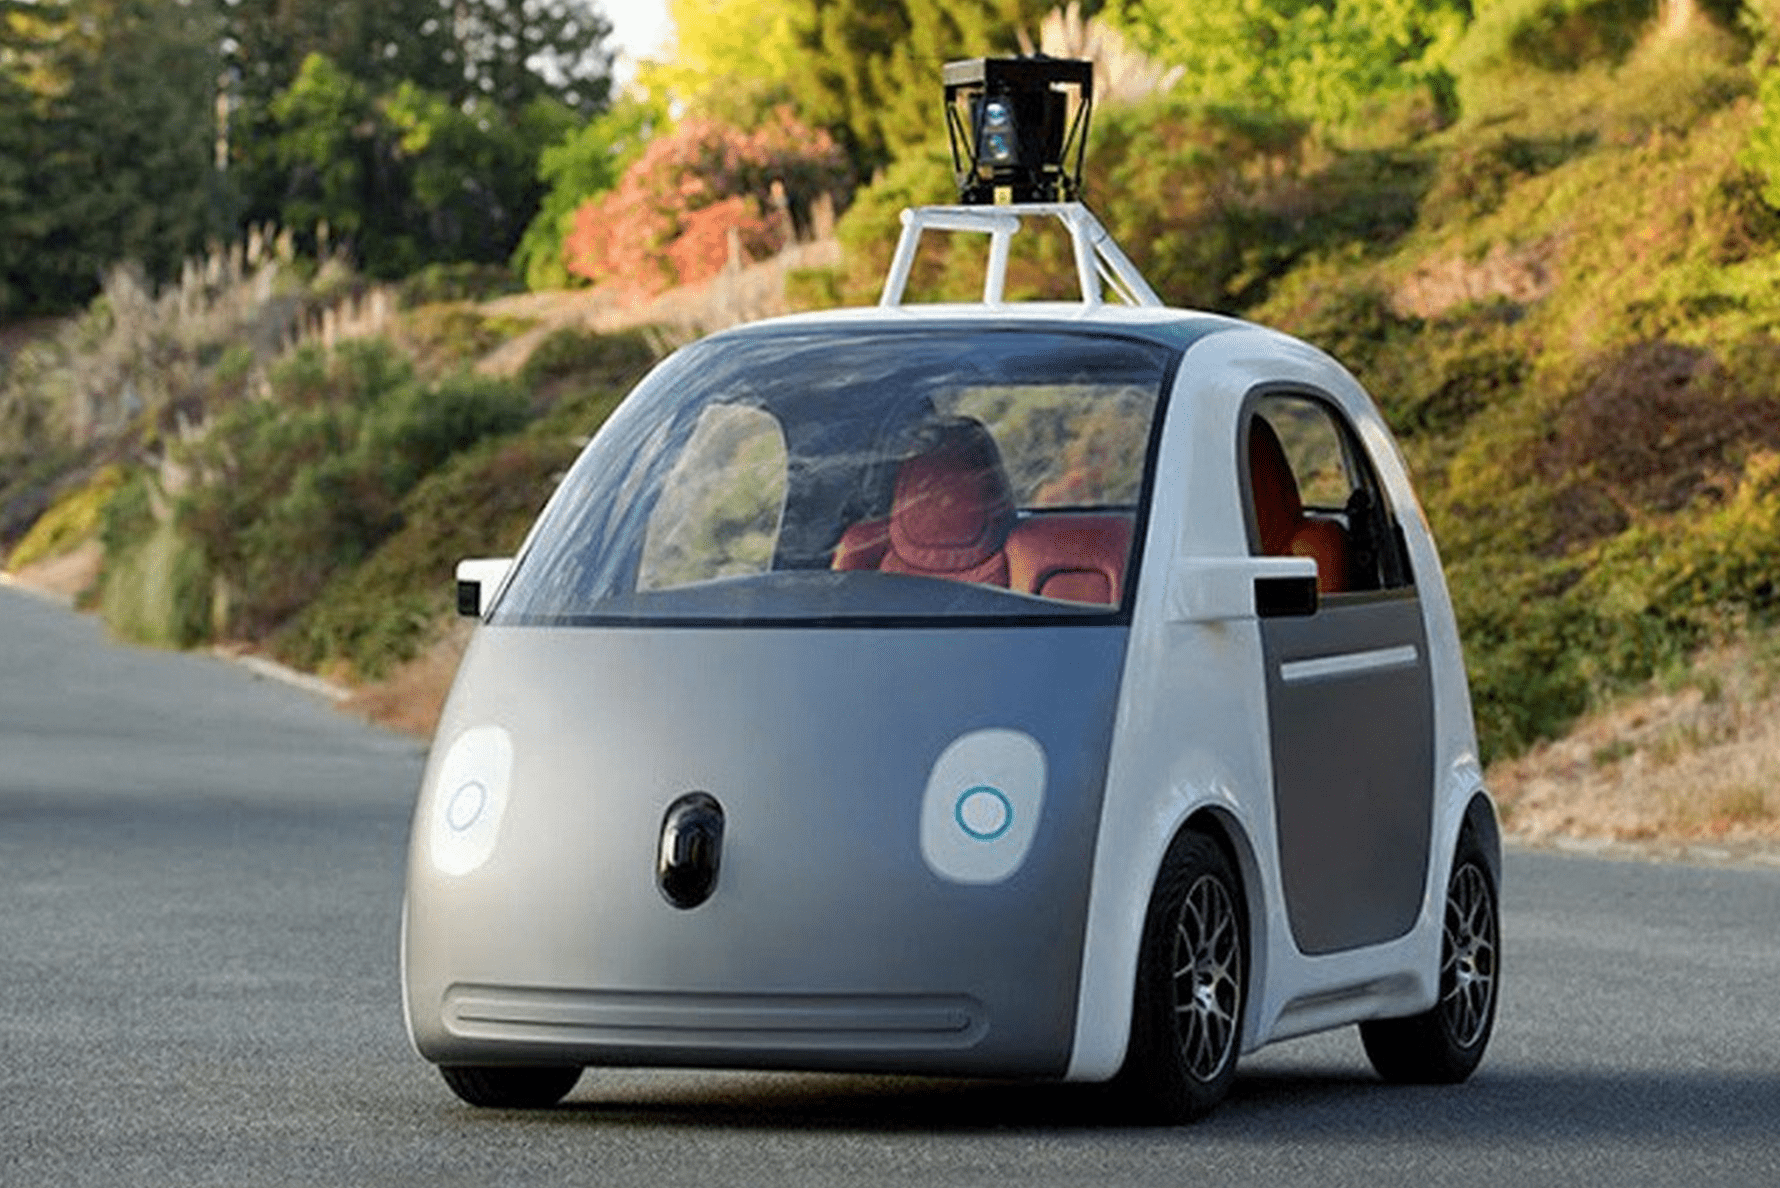 Google made its own self-driving car.